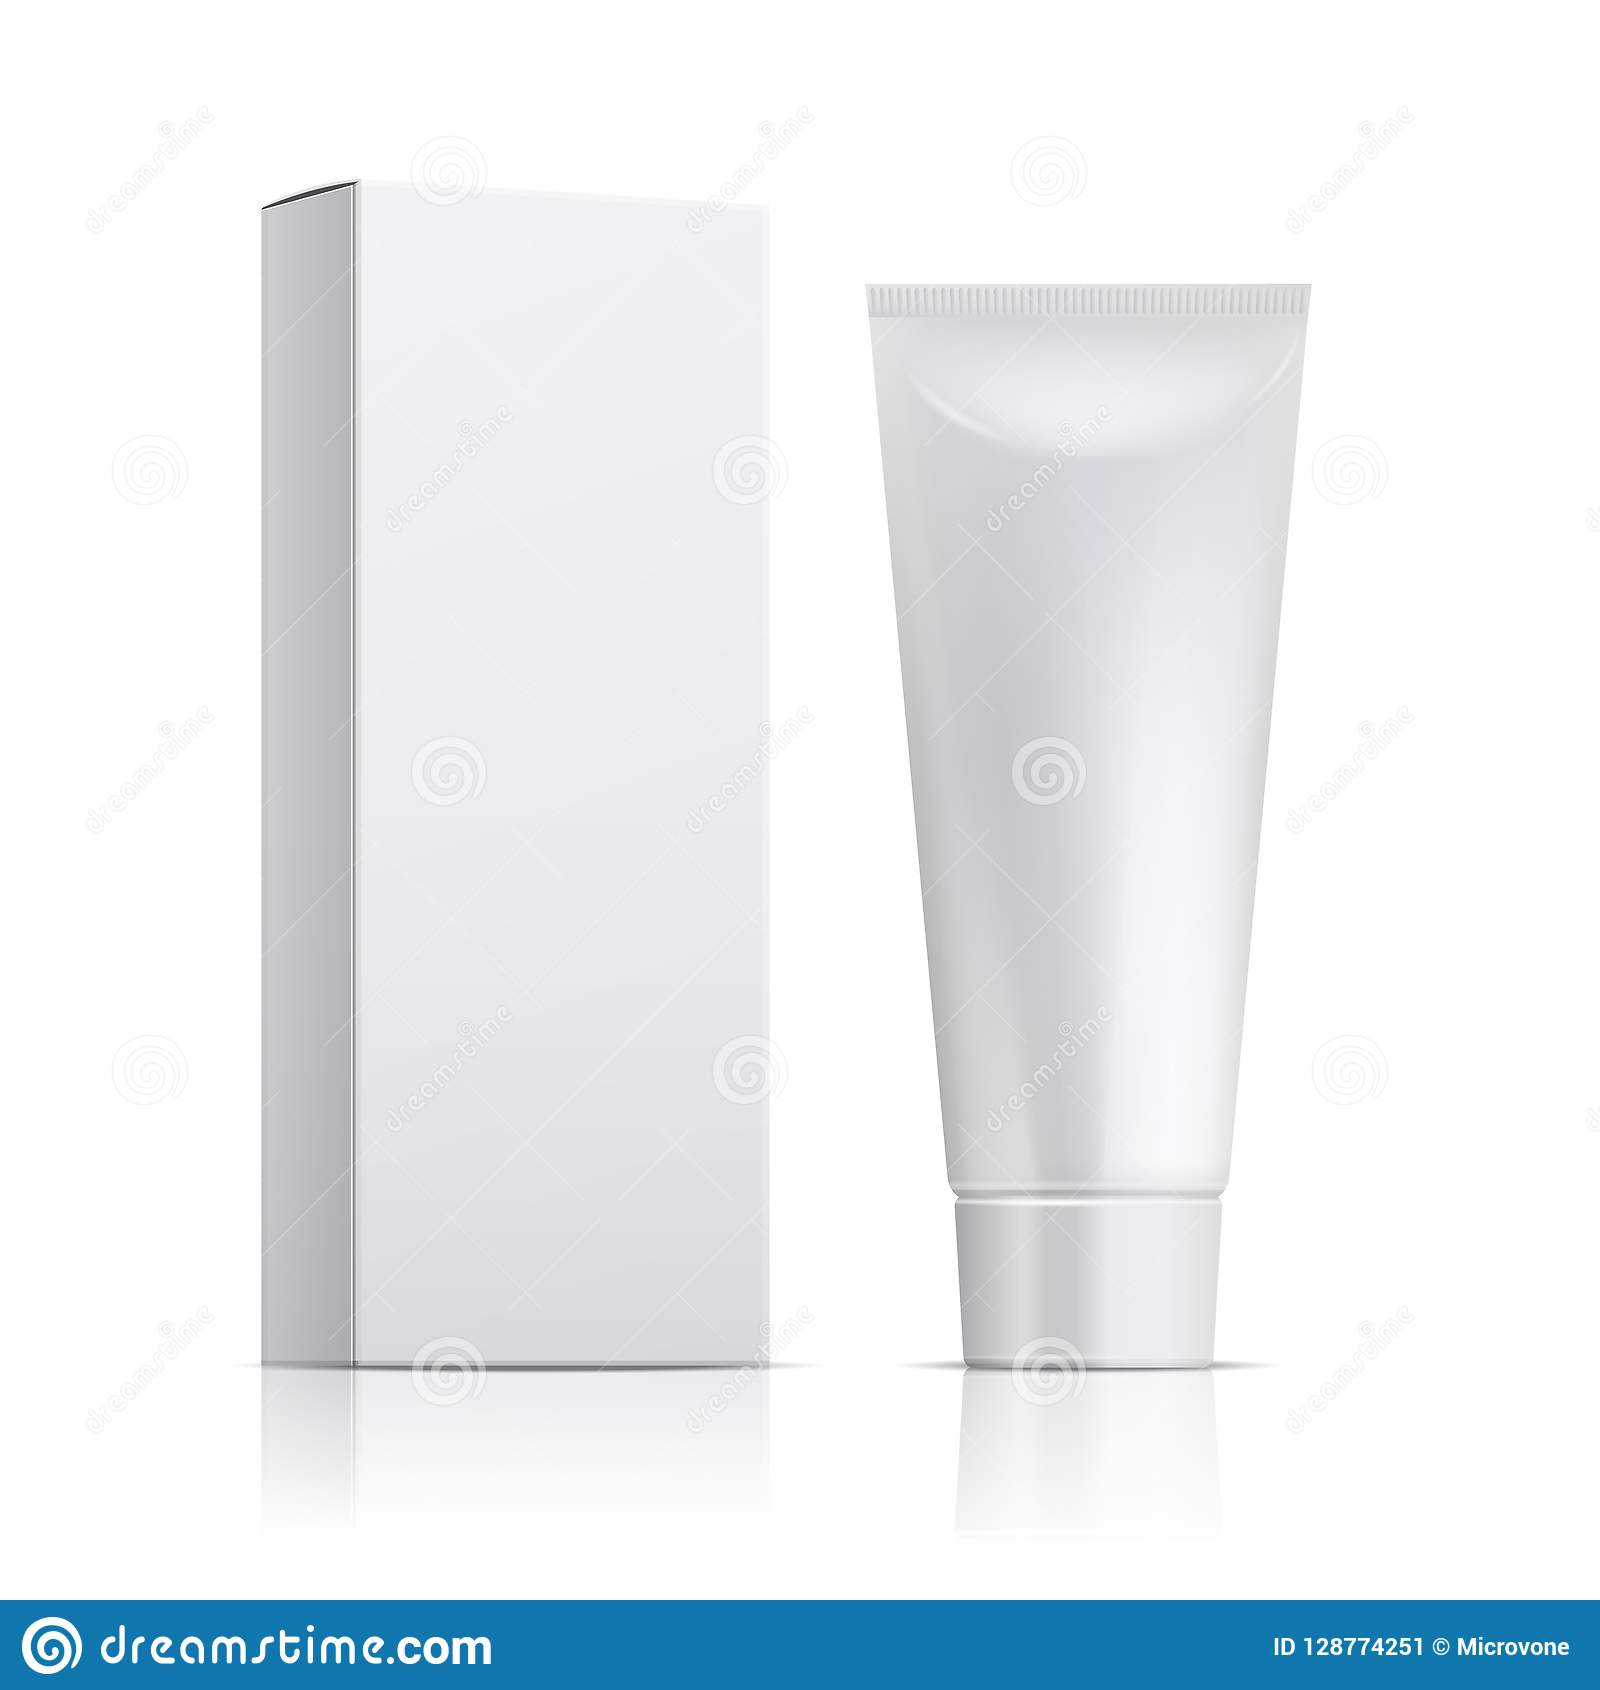 Cream Tube And Packaging Ointment Or Toothpaste Box Mockup 3d White Cosmetic Gel Vector Template Stock Vector Illustration Of Background Isolated 128774251